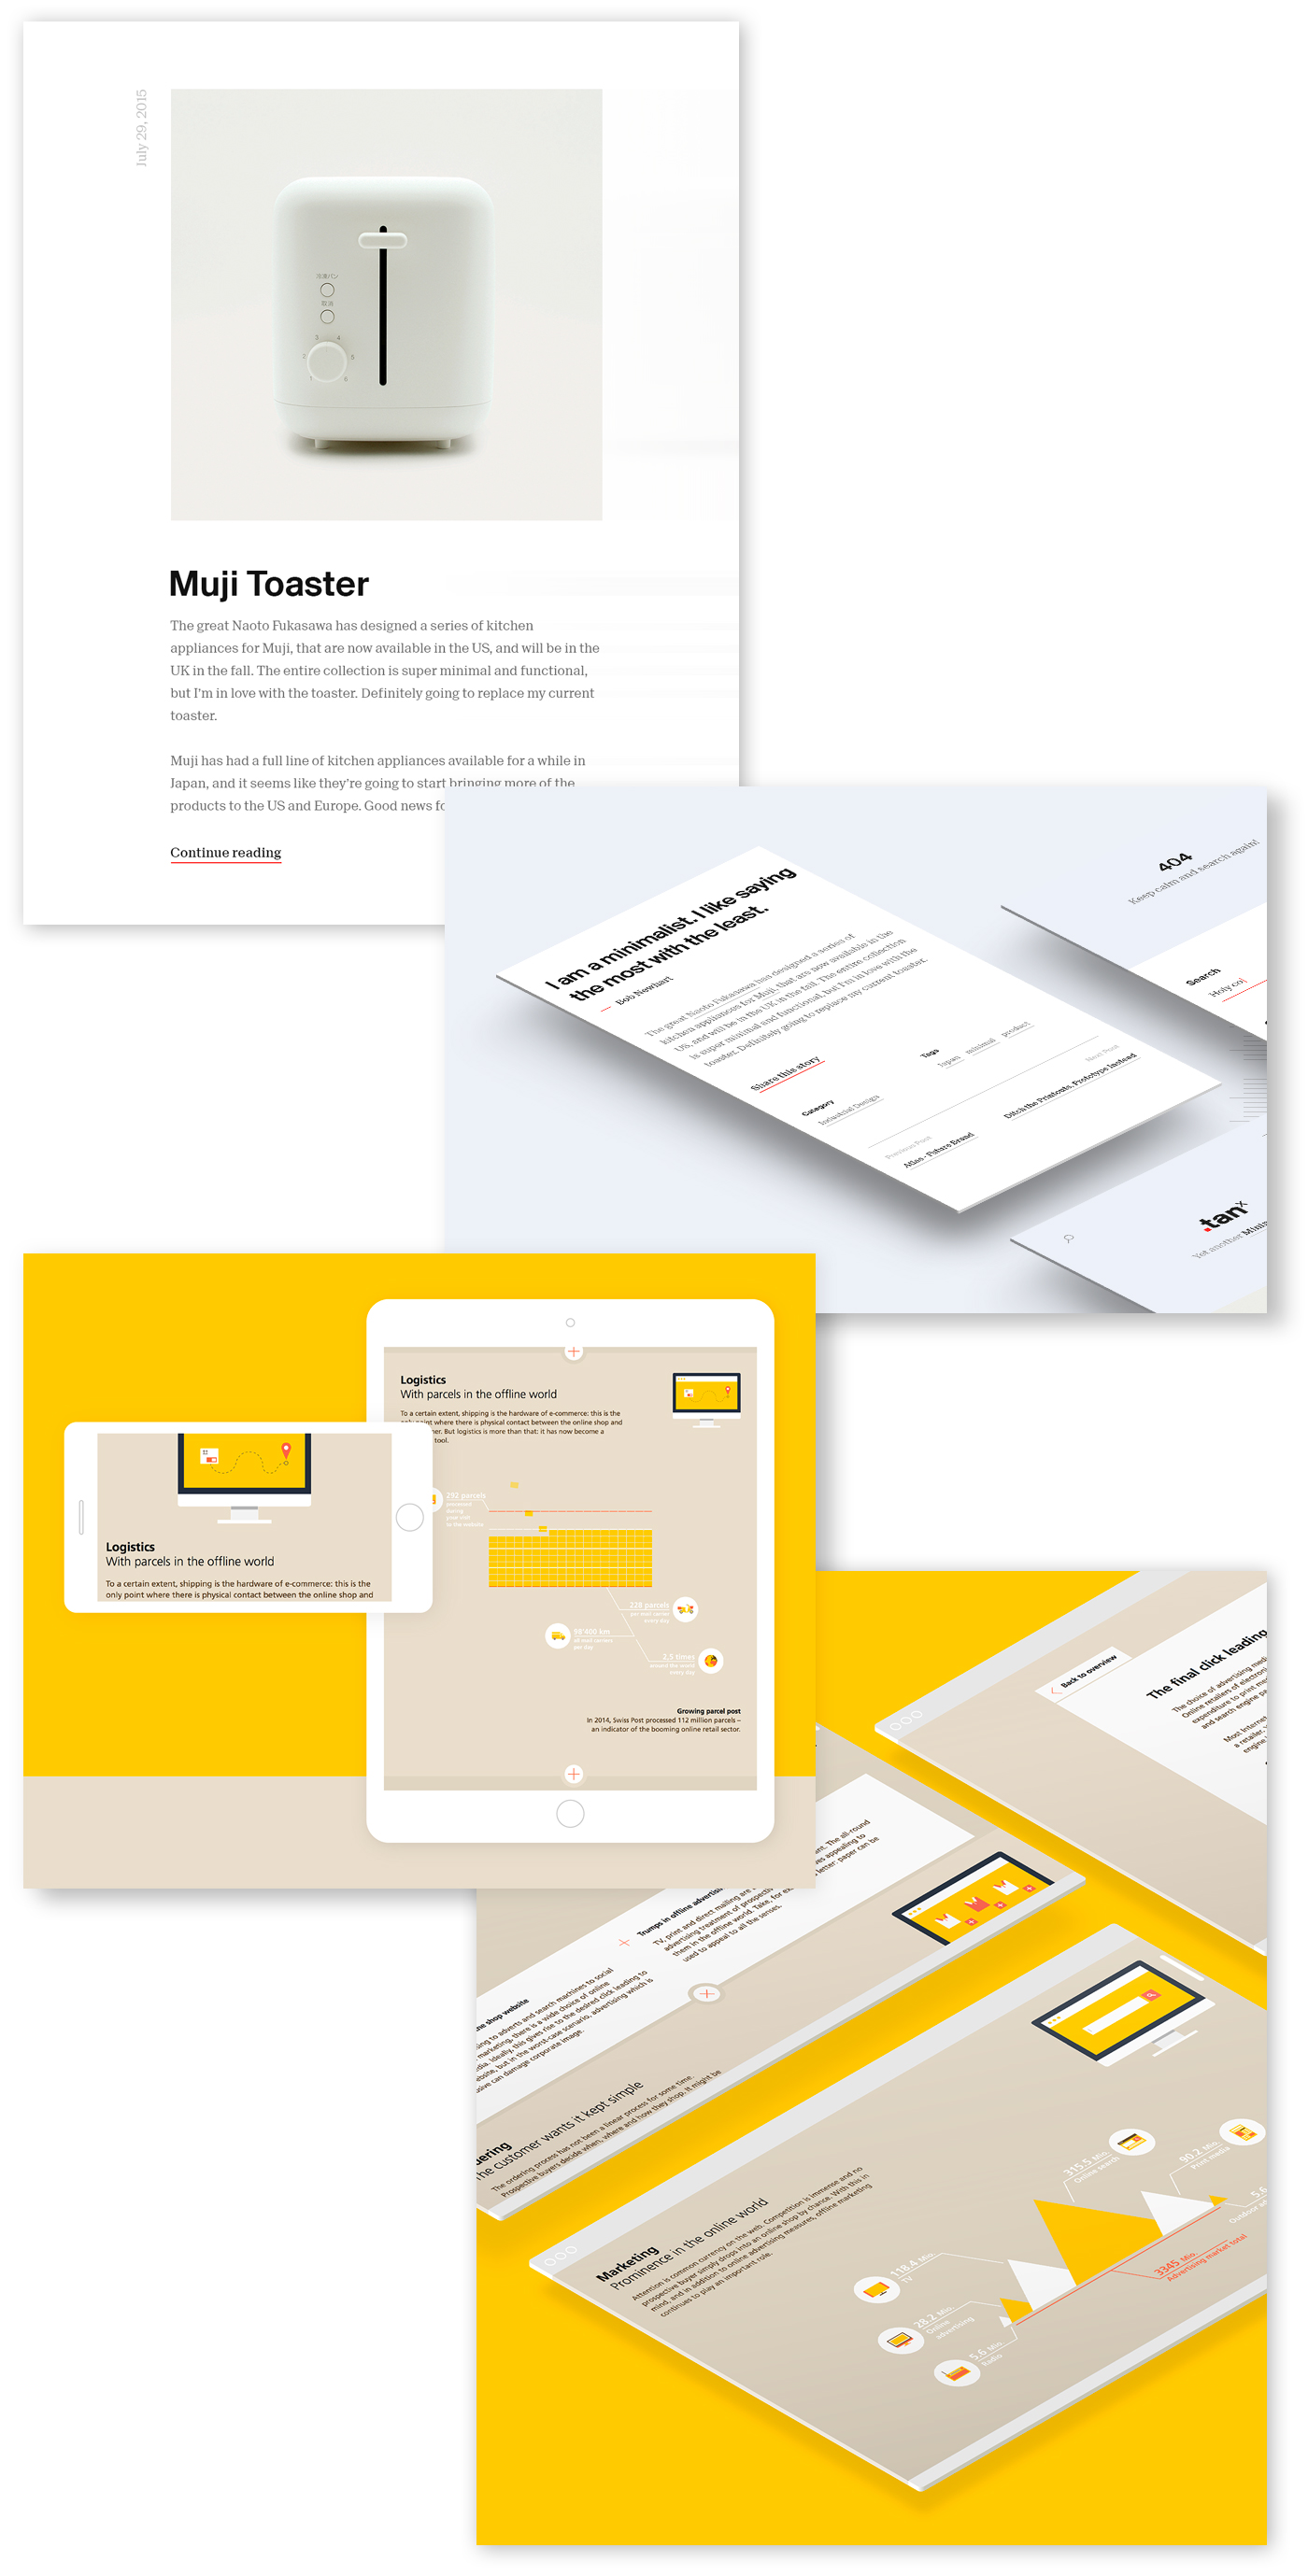 https://www.behance.net/gallery/35177889/TANx-Beautiful-Free-Blog-Wordpress-Theme   https://www.behance.net/gallery/33797548/Animated-Infographic-Microsite-on-E-Commerce